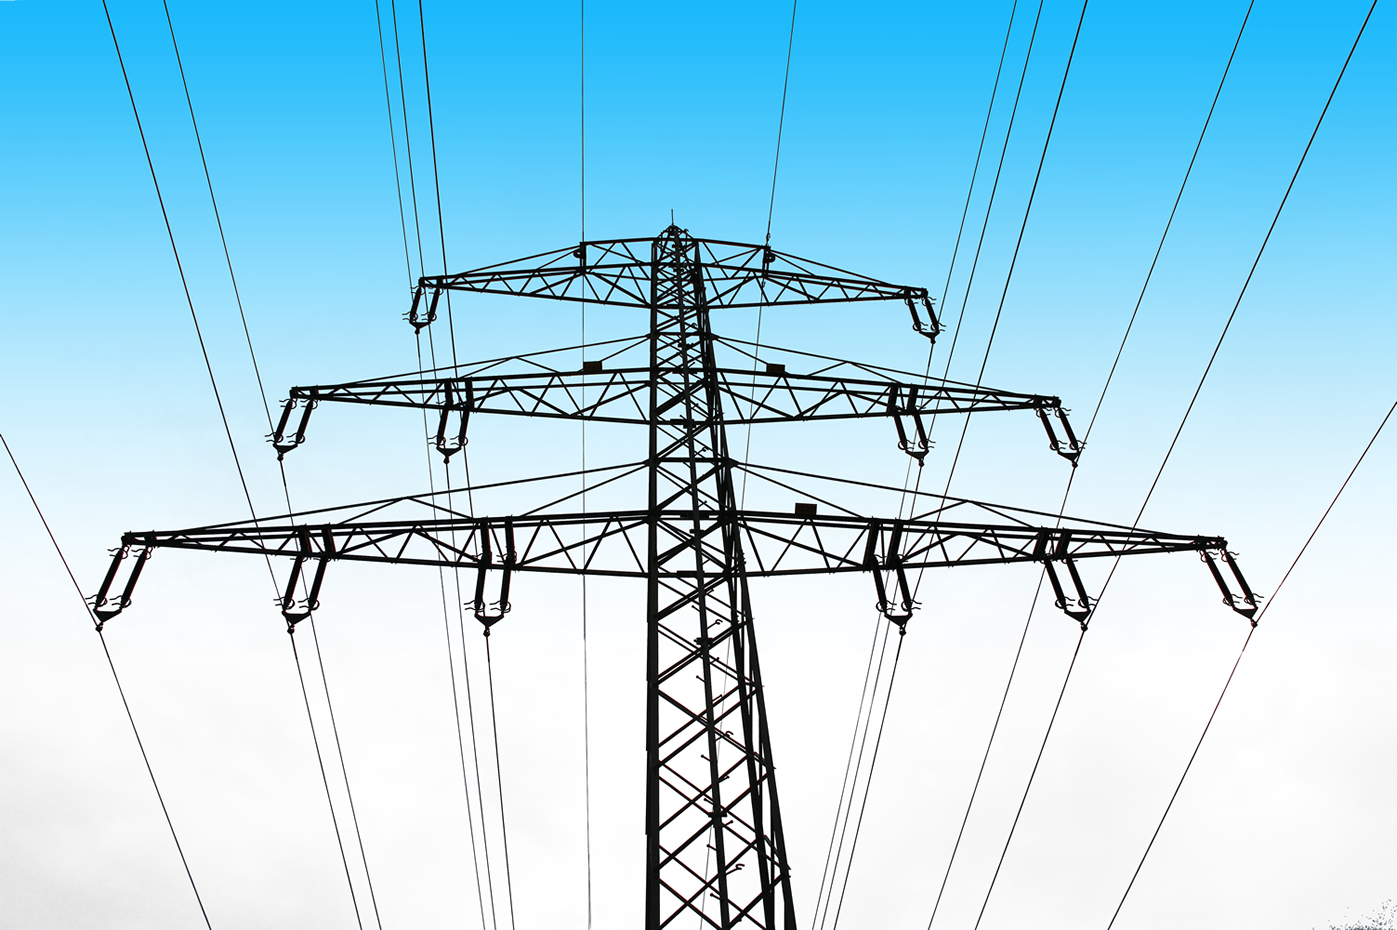 Overhead Power Line : Overhead power lines pose highest risk during non